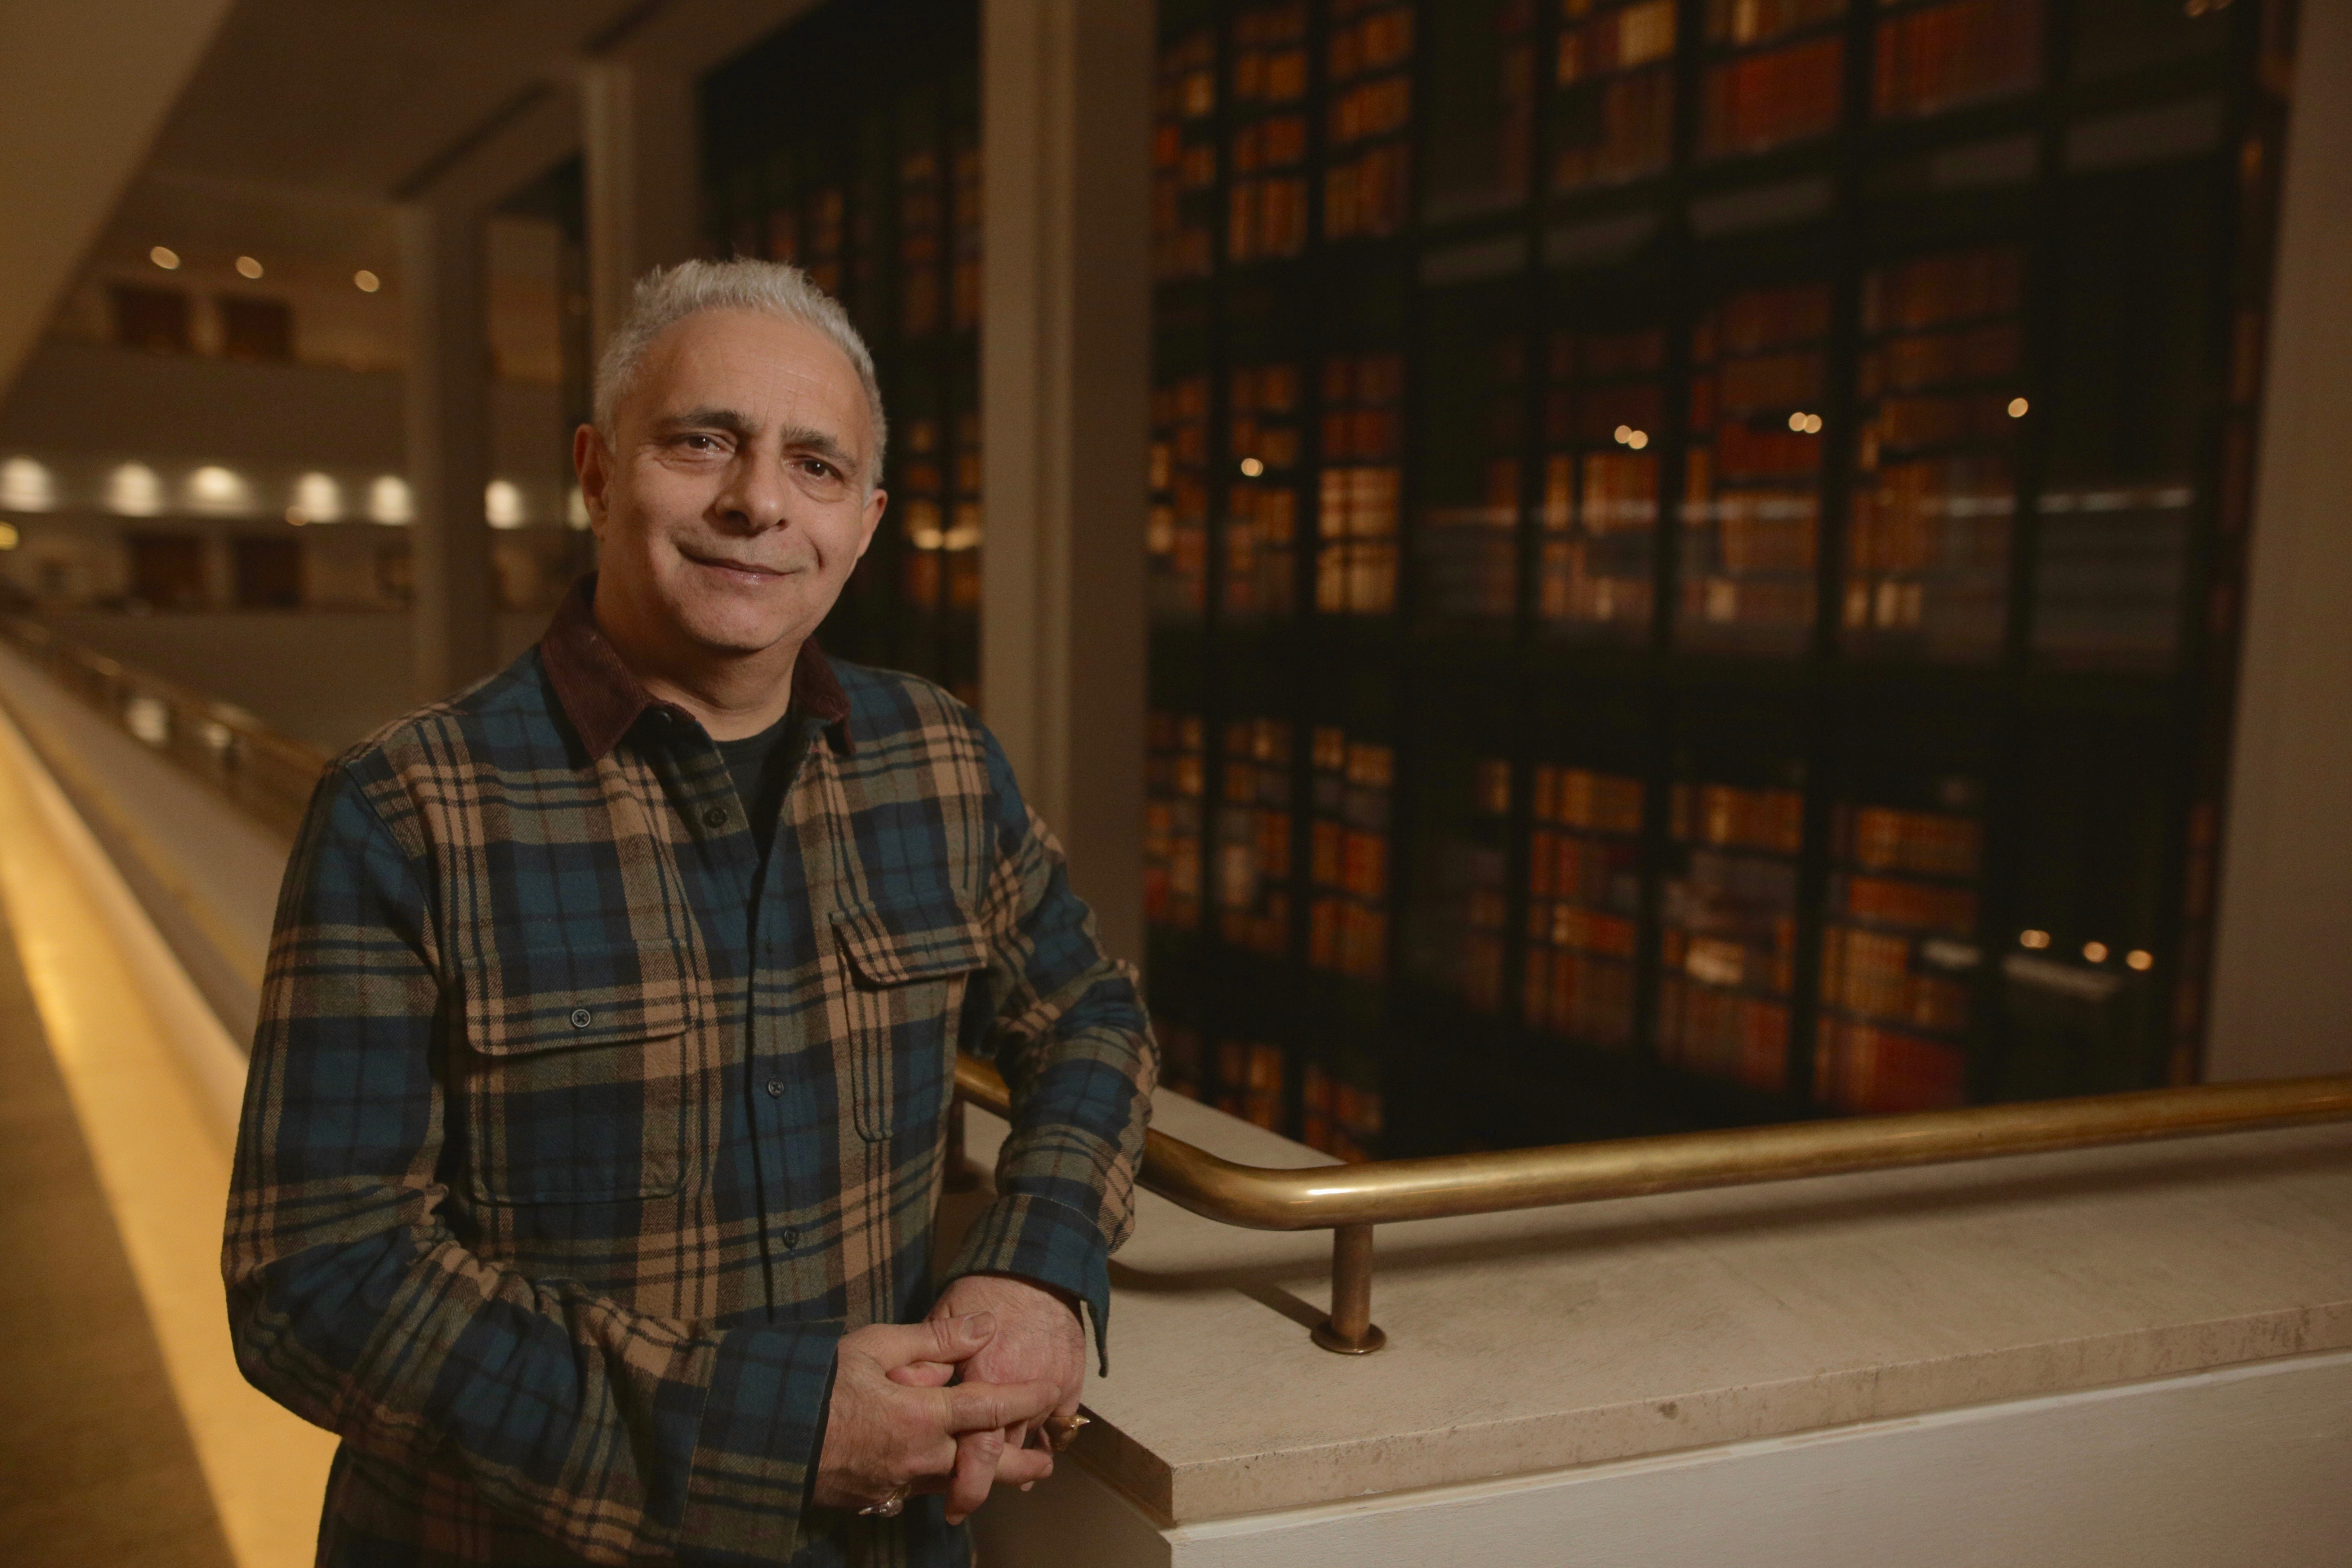 Hanif Kureishi at the British Library